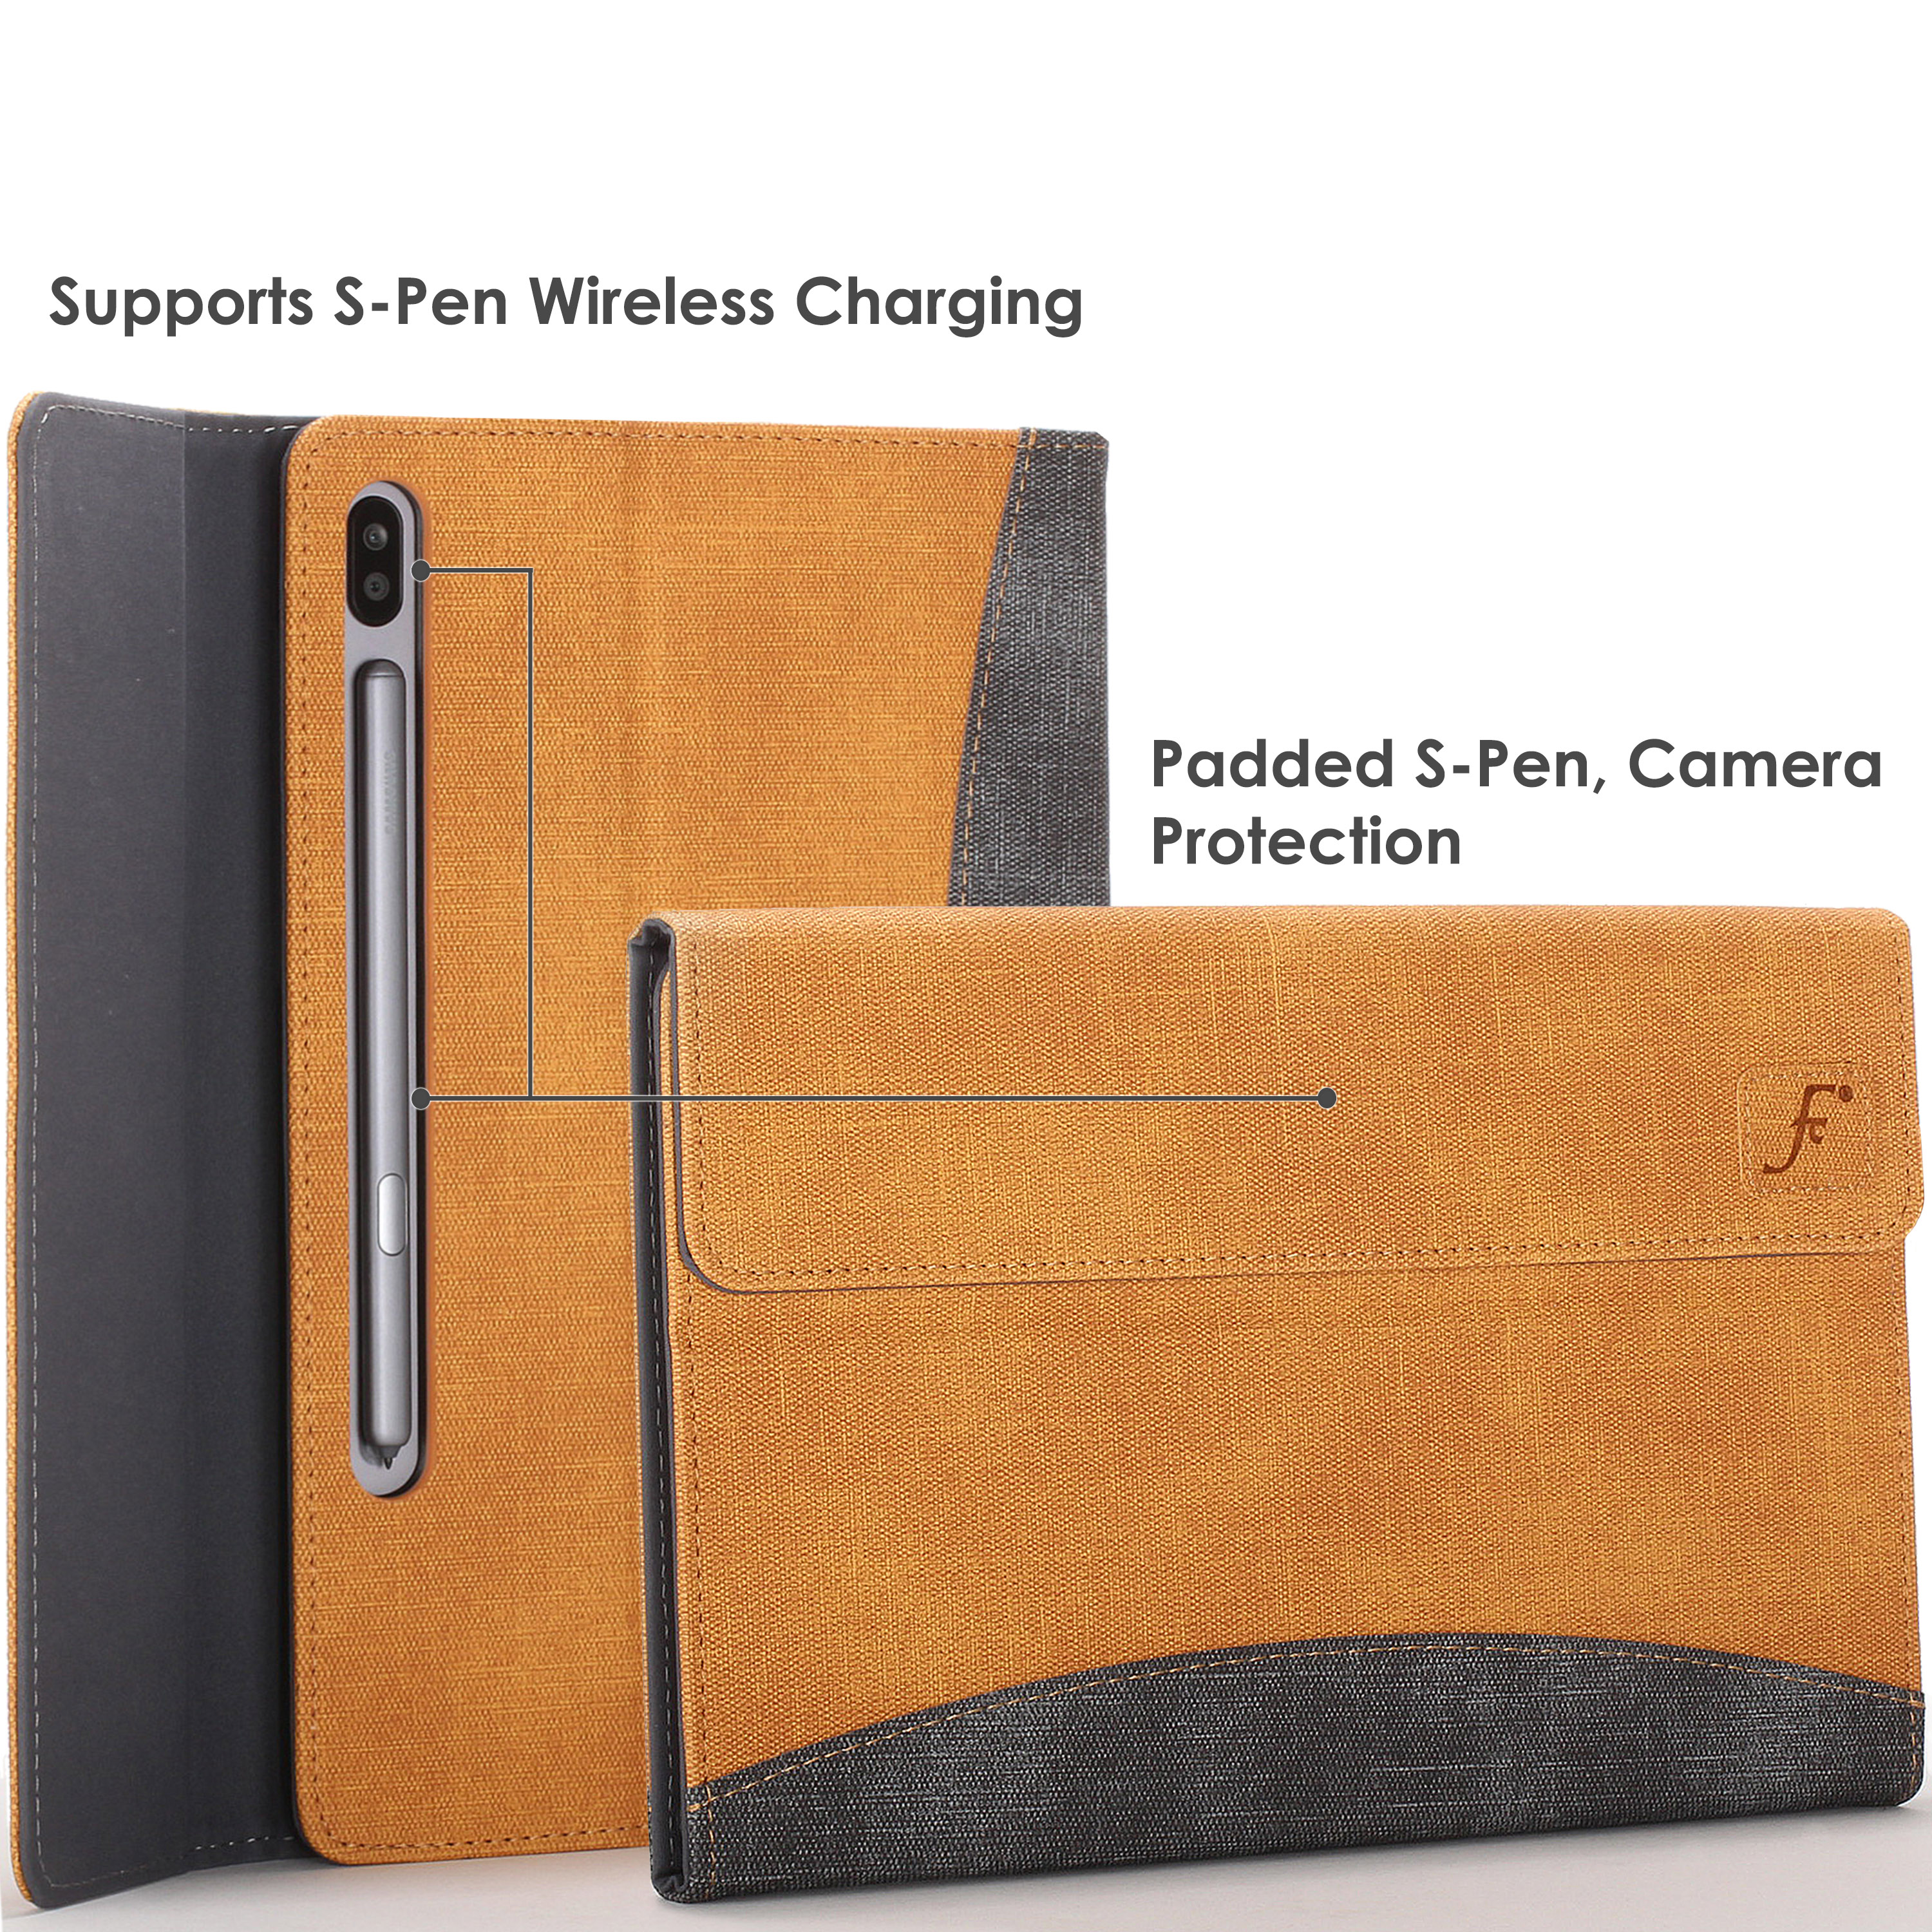 Samsung-Galaxy-Tab-S6-10-5-Case-Cover-Stand-with-Document-Pocket-Stylus thumbnail 45